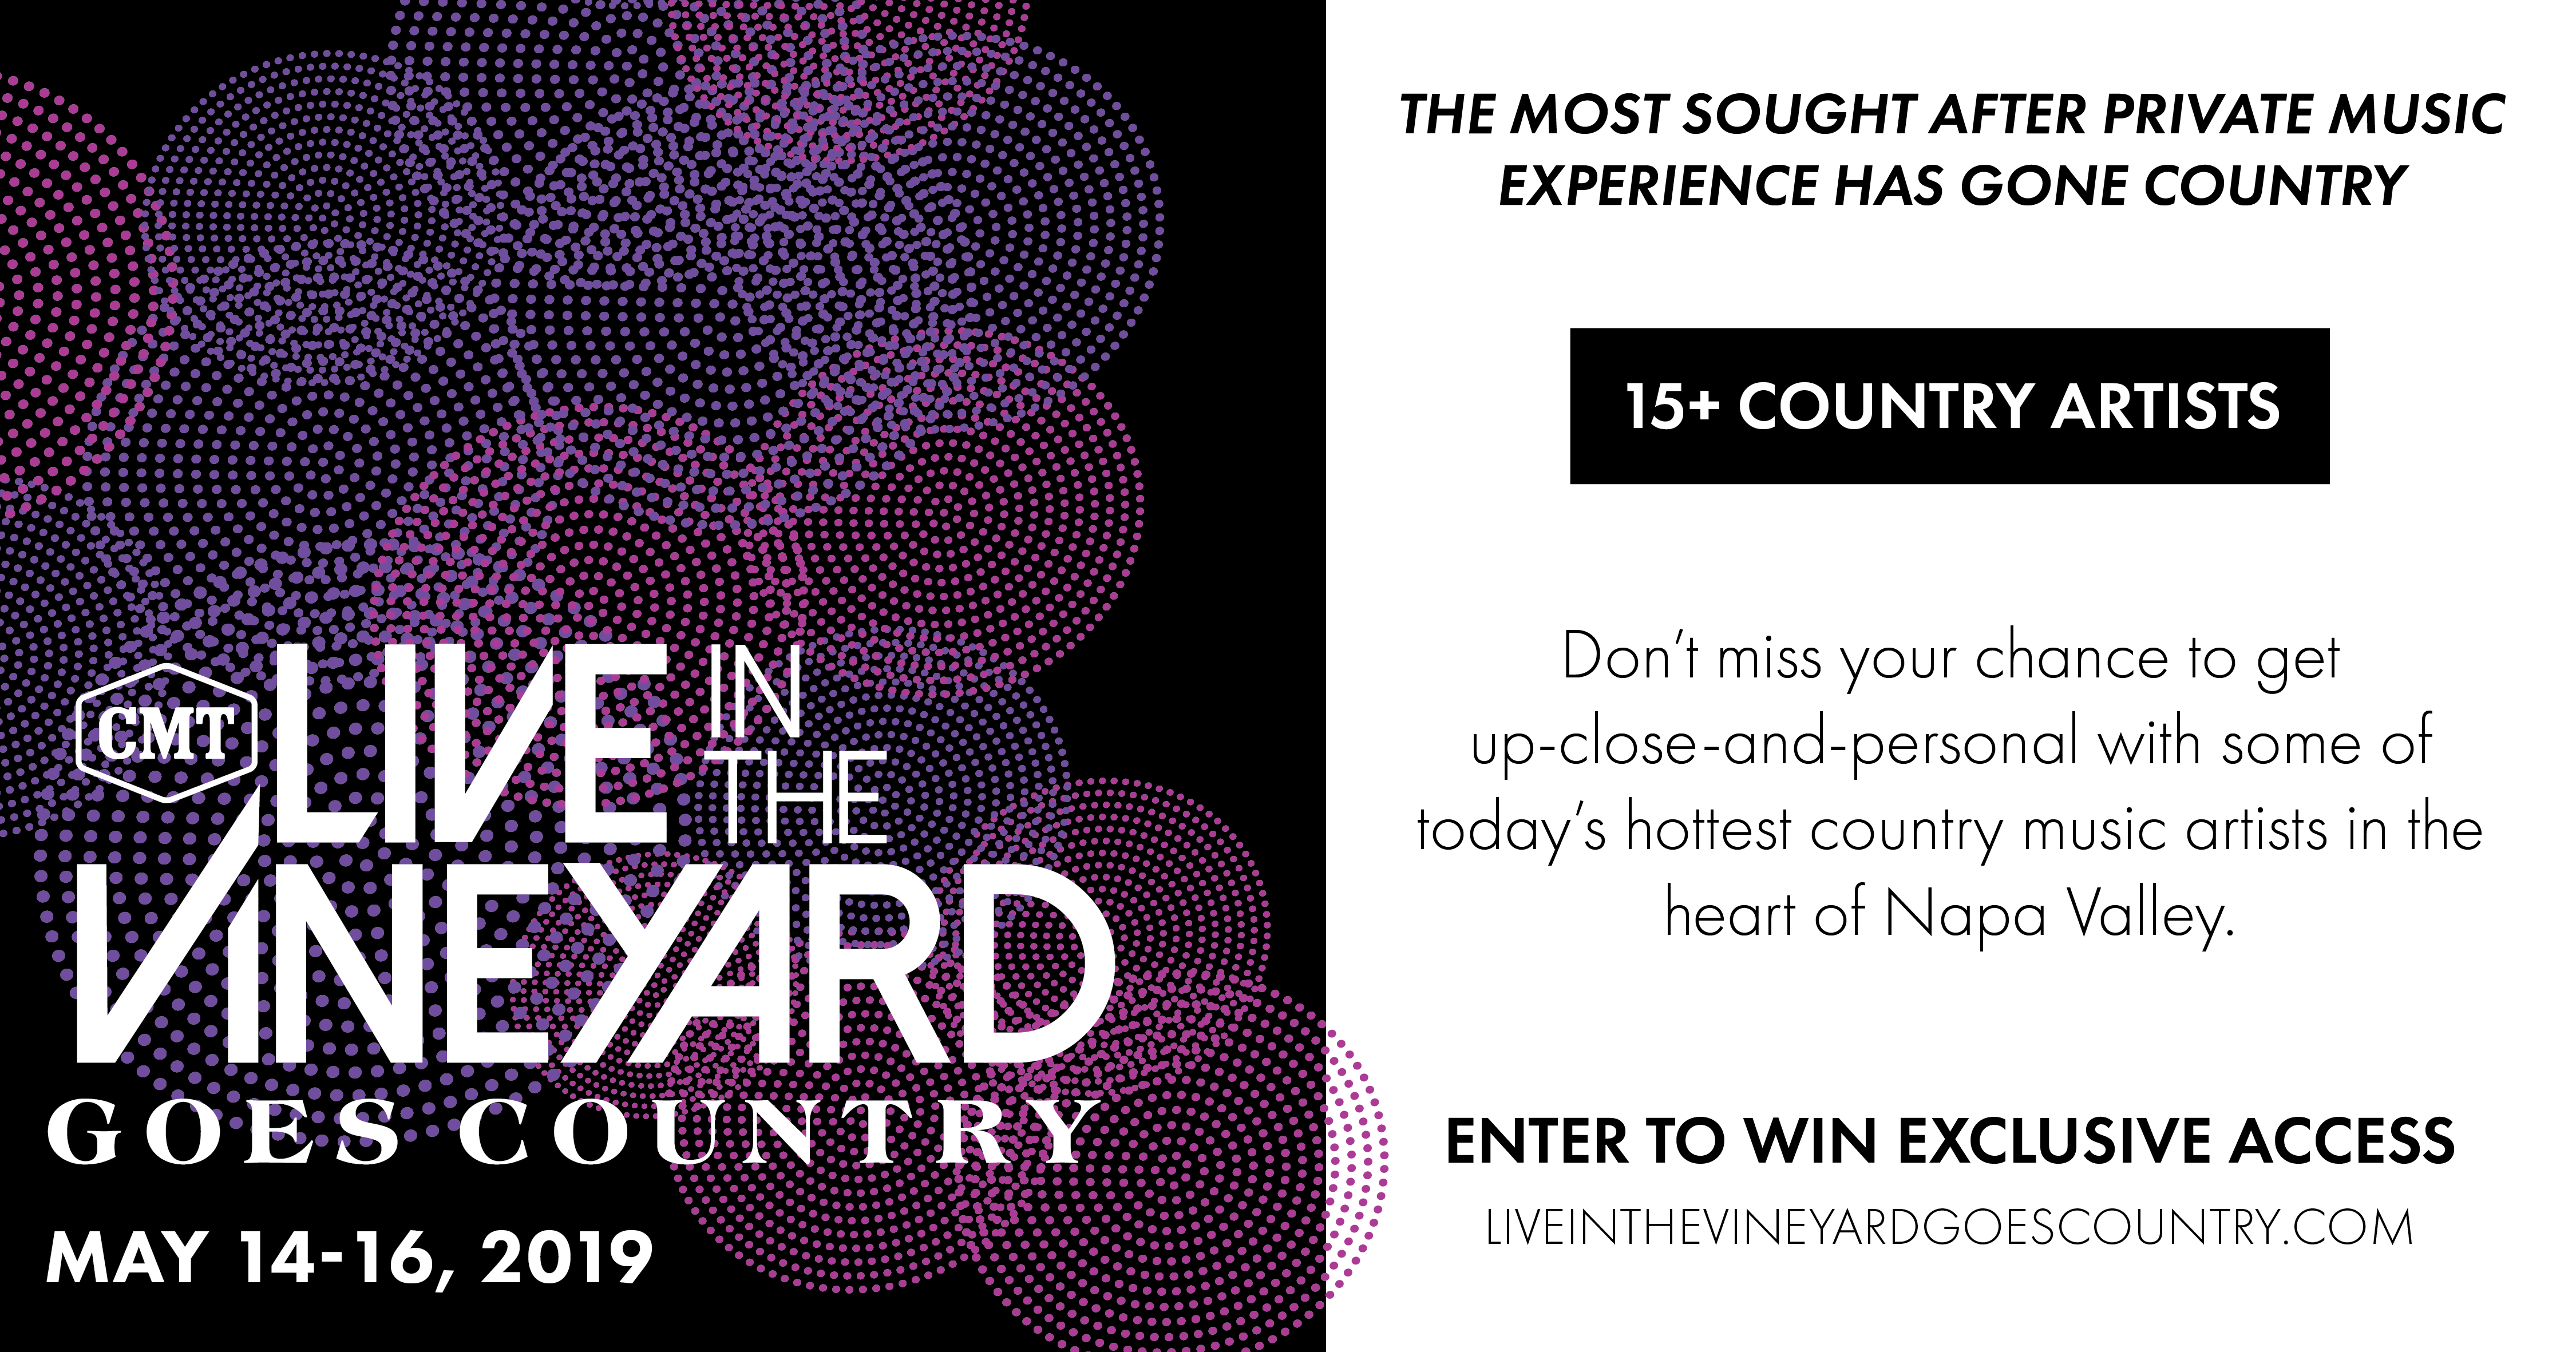 2019 Live in the Vineyard Goes Country Concert - Win a trip to Napa. Ca Giveaway Image